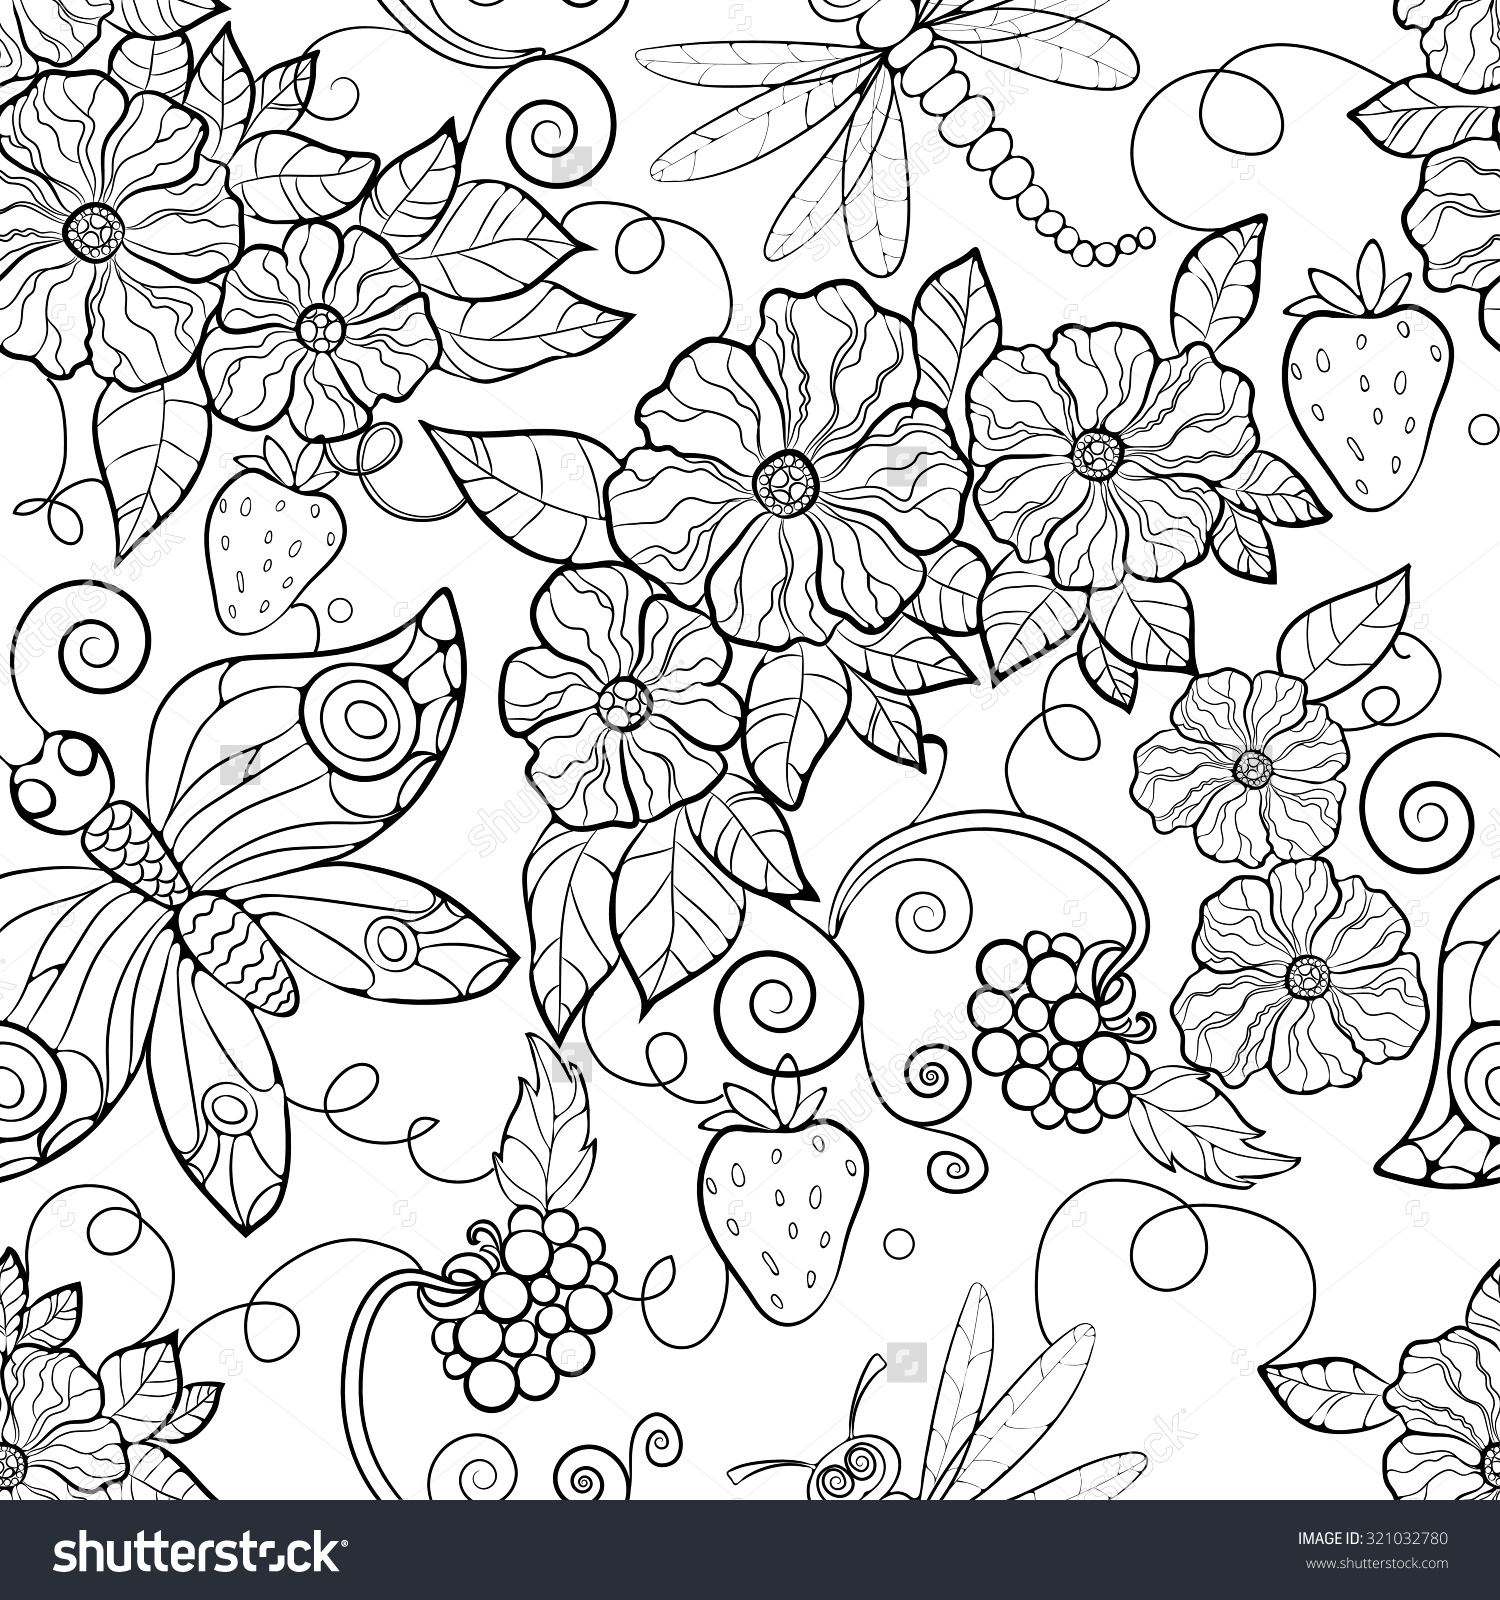 1500x1600 Coloring Pages For Adults Flowers